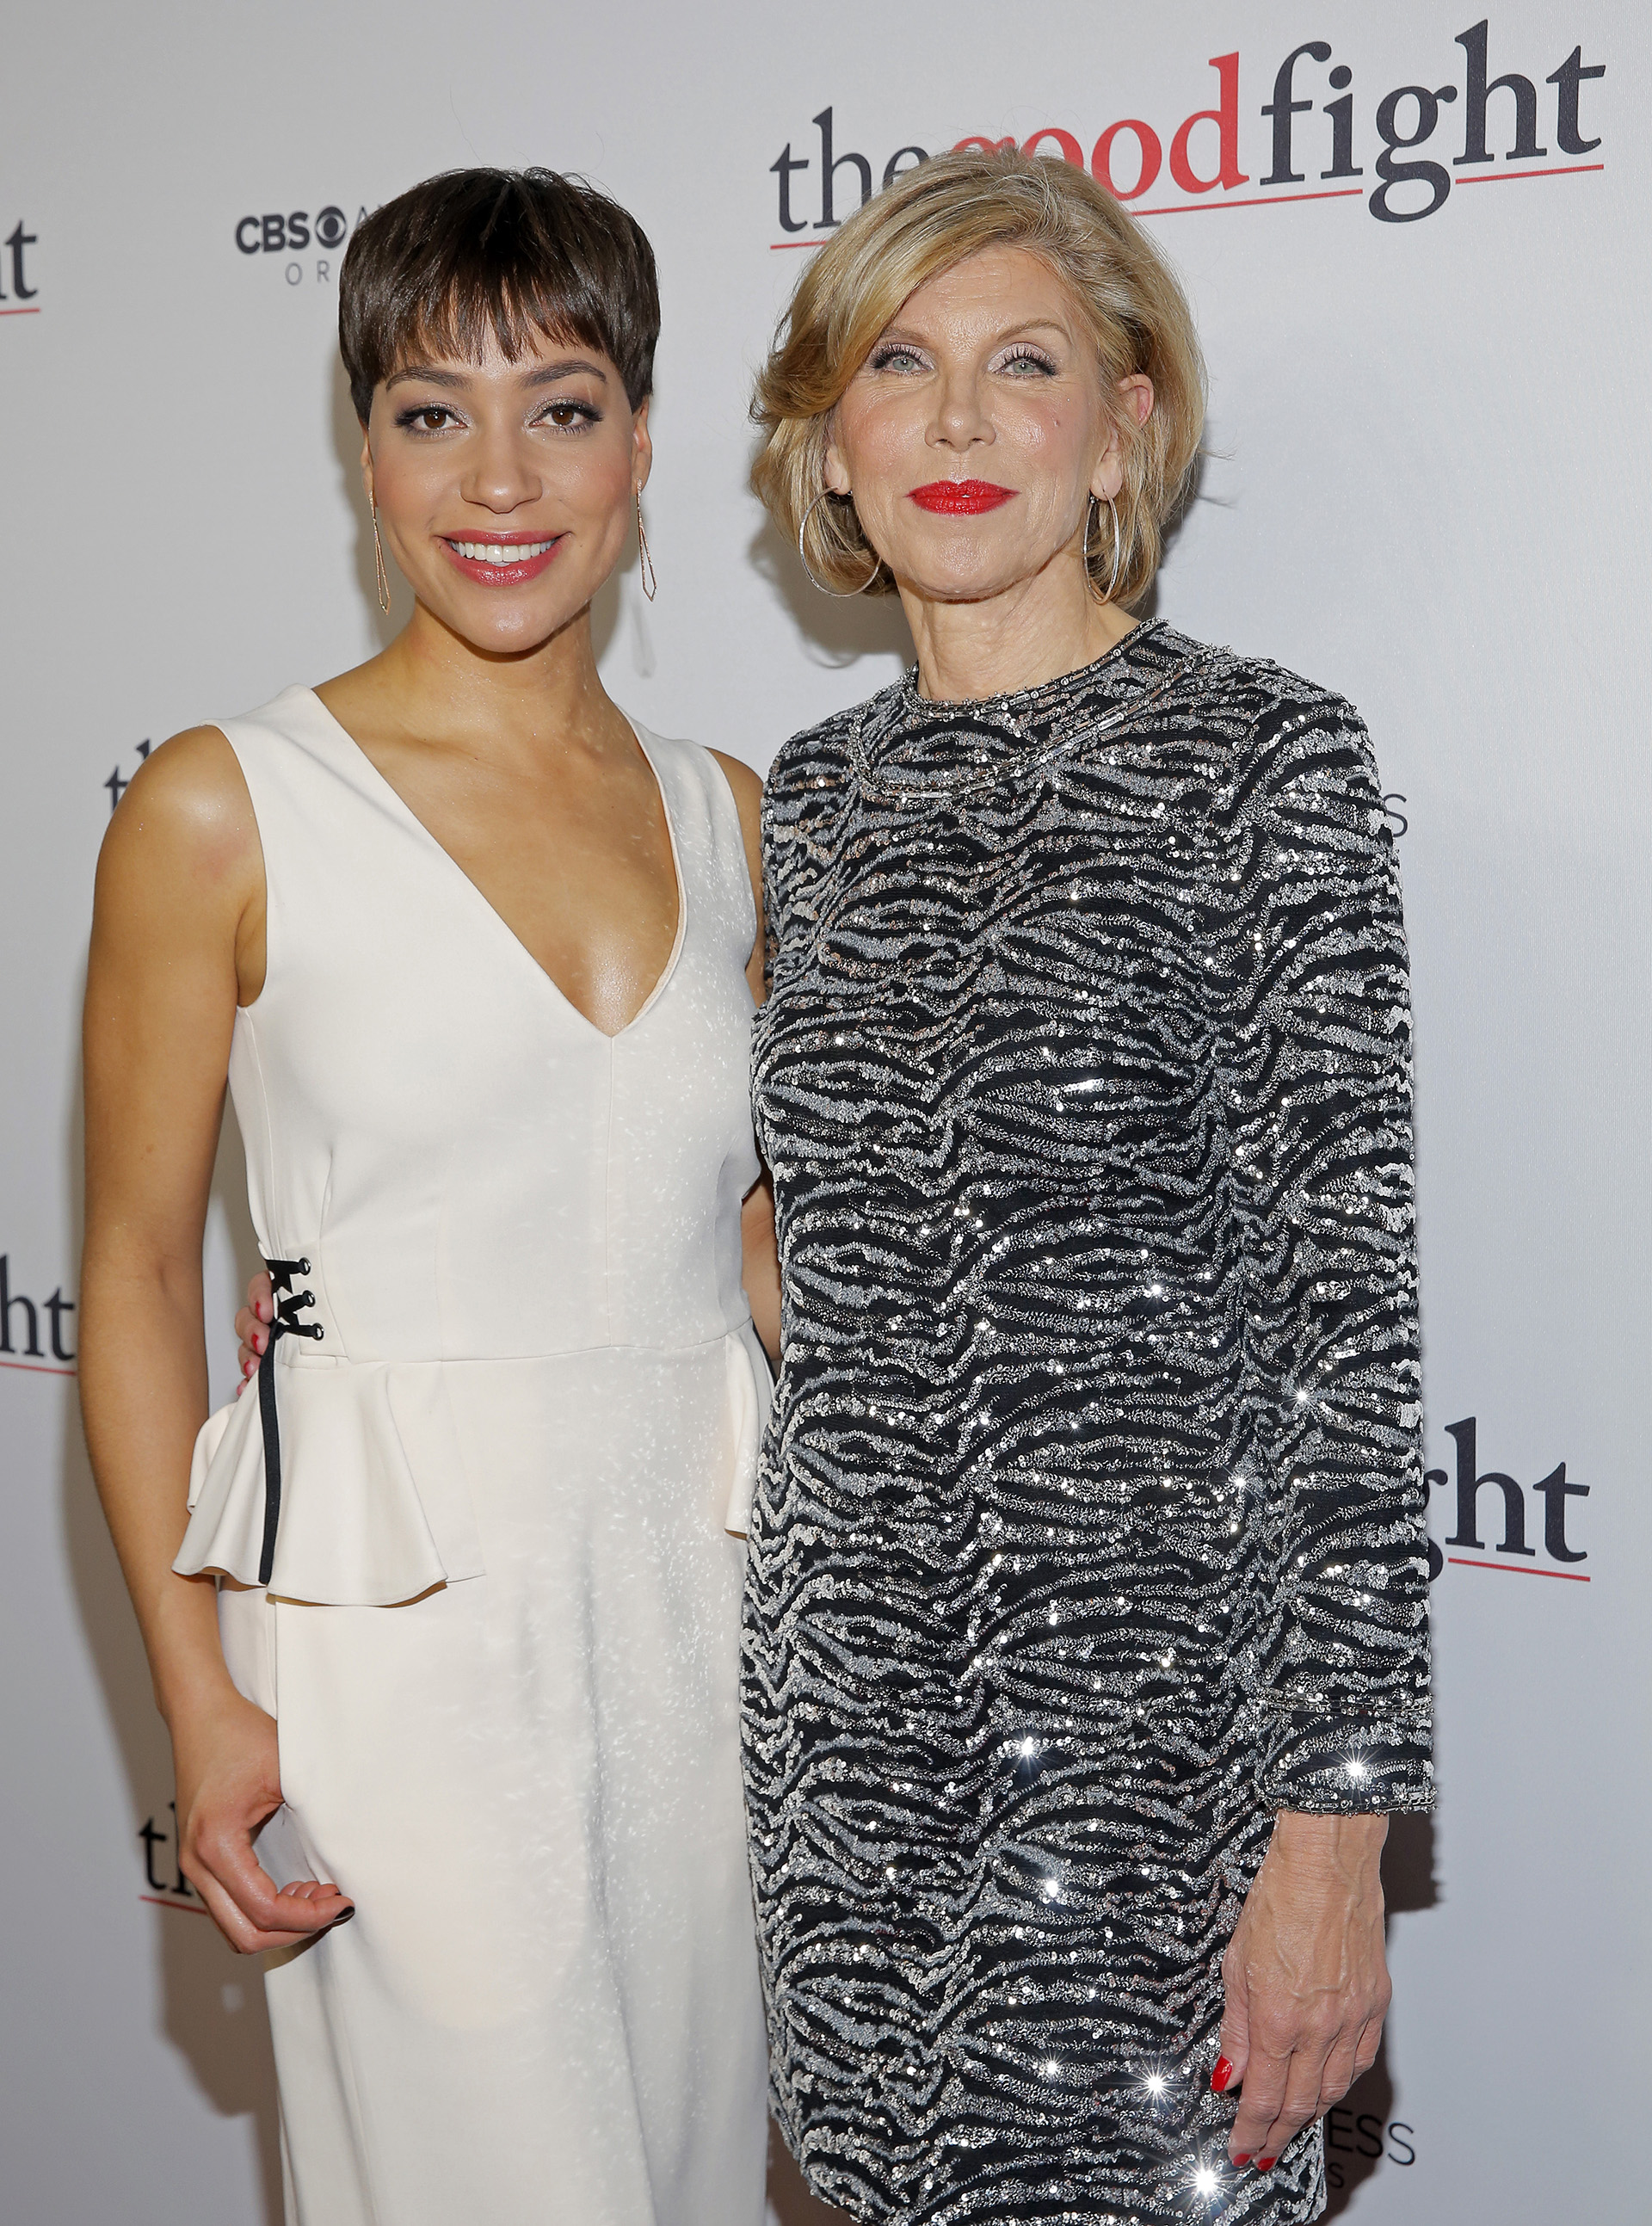 Cush Jumbo poses with co-star—and co-counsel—Christine Baranski.